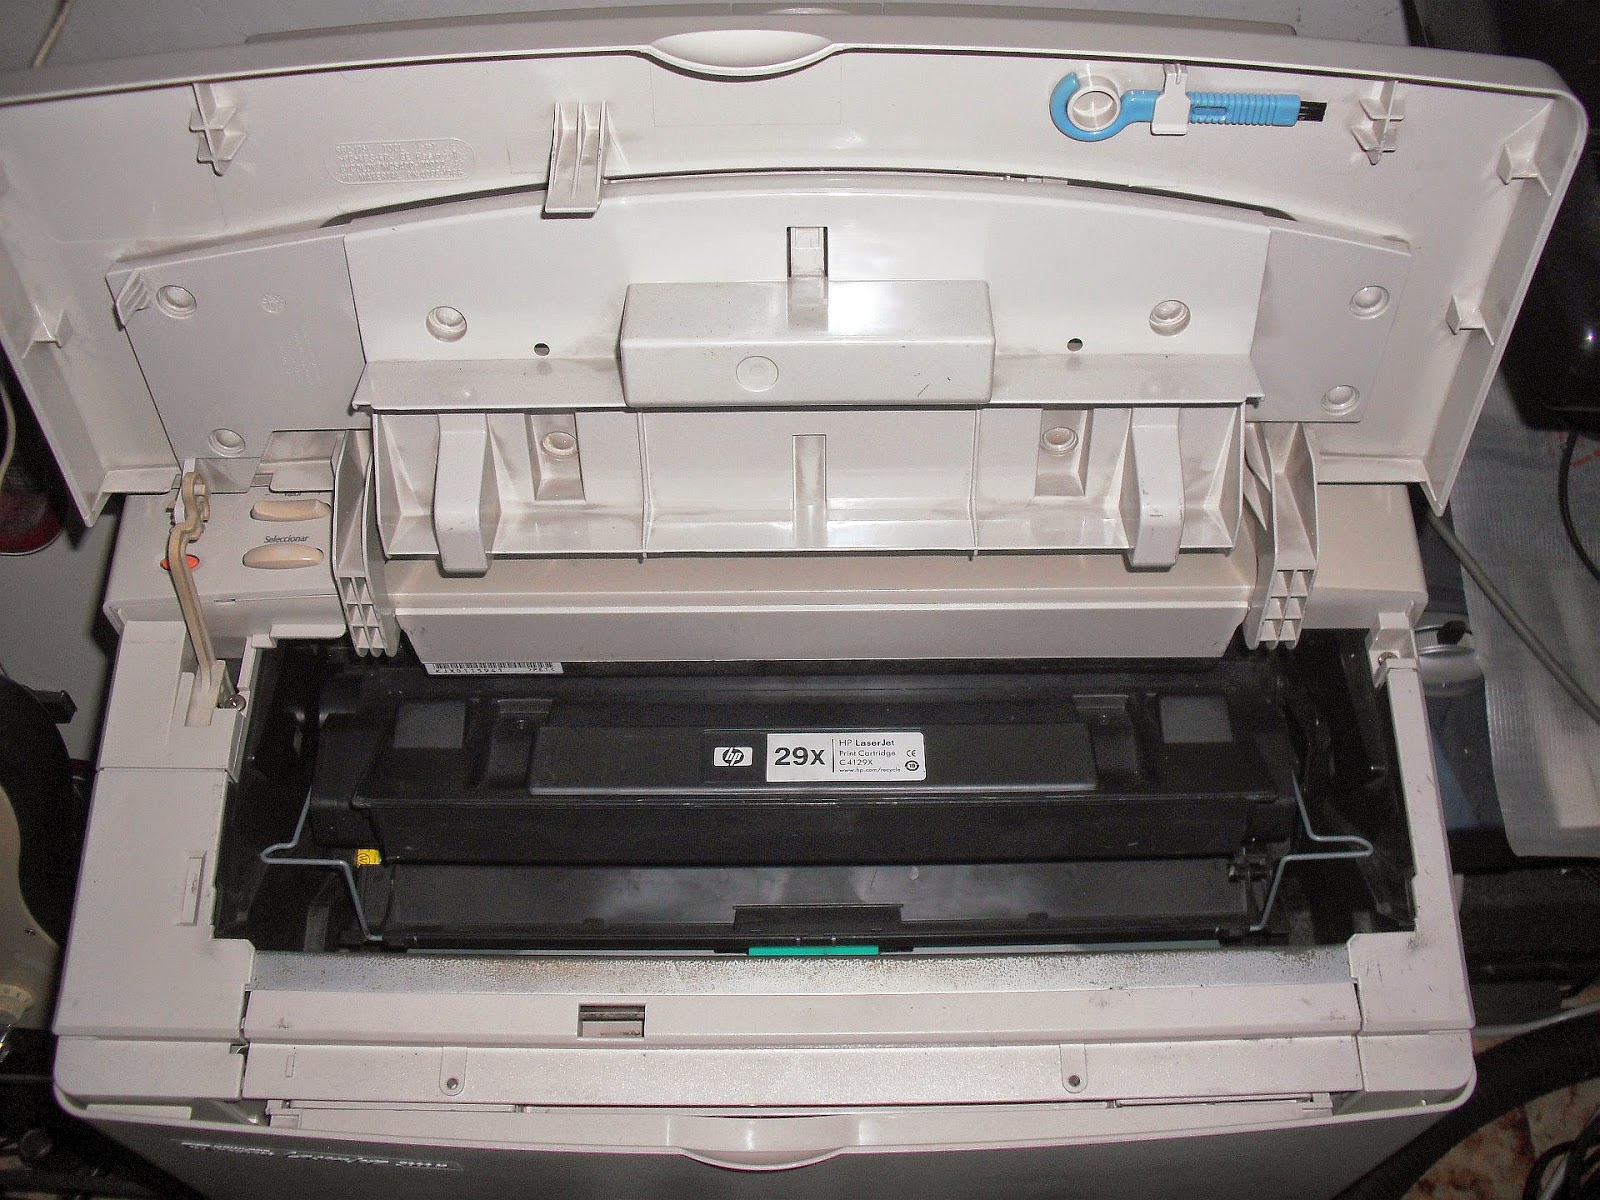 HP Laserjet 5000N repair and restoration | Embedded Systems